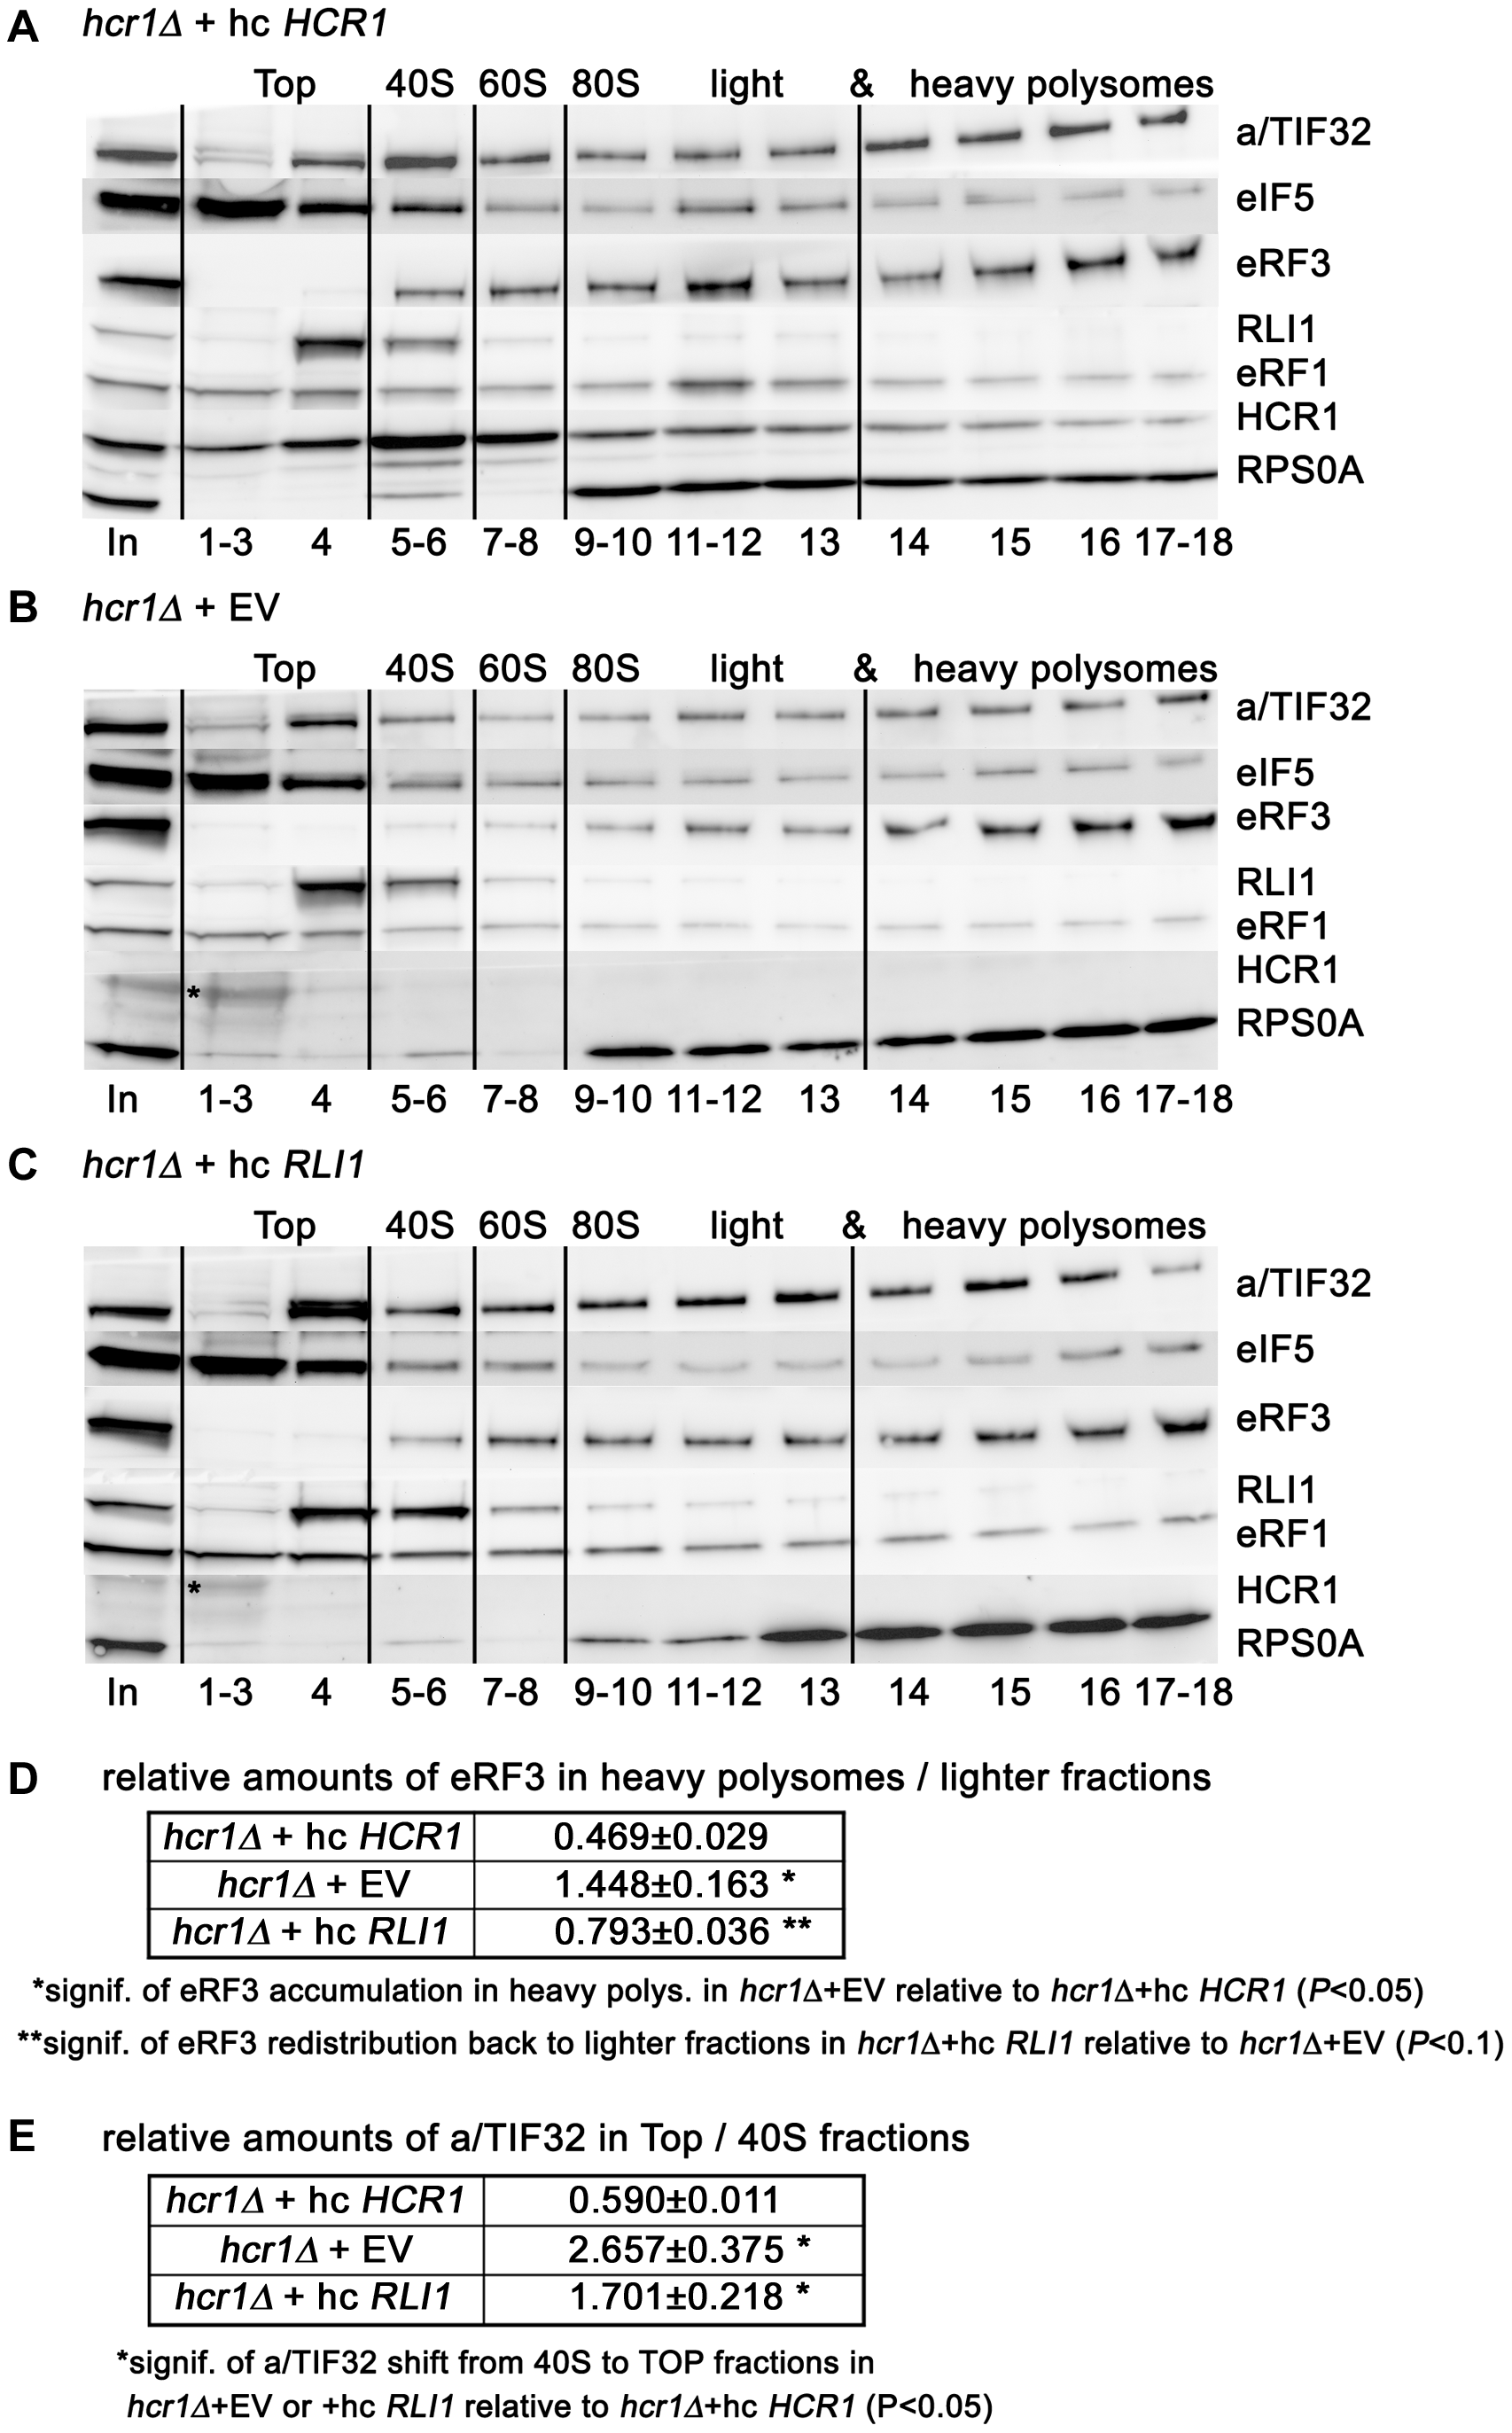 Deletion of <i>hcr1</i> results in accumulation of eRF3 in heavy polysomes.